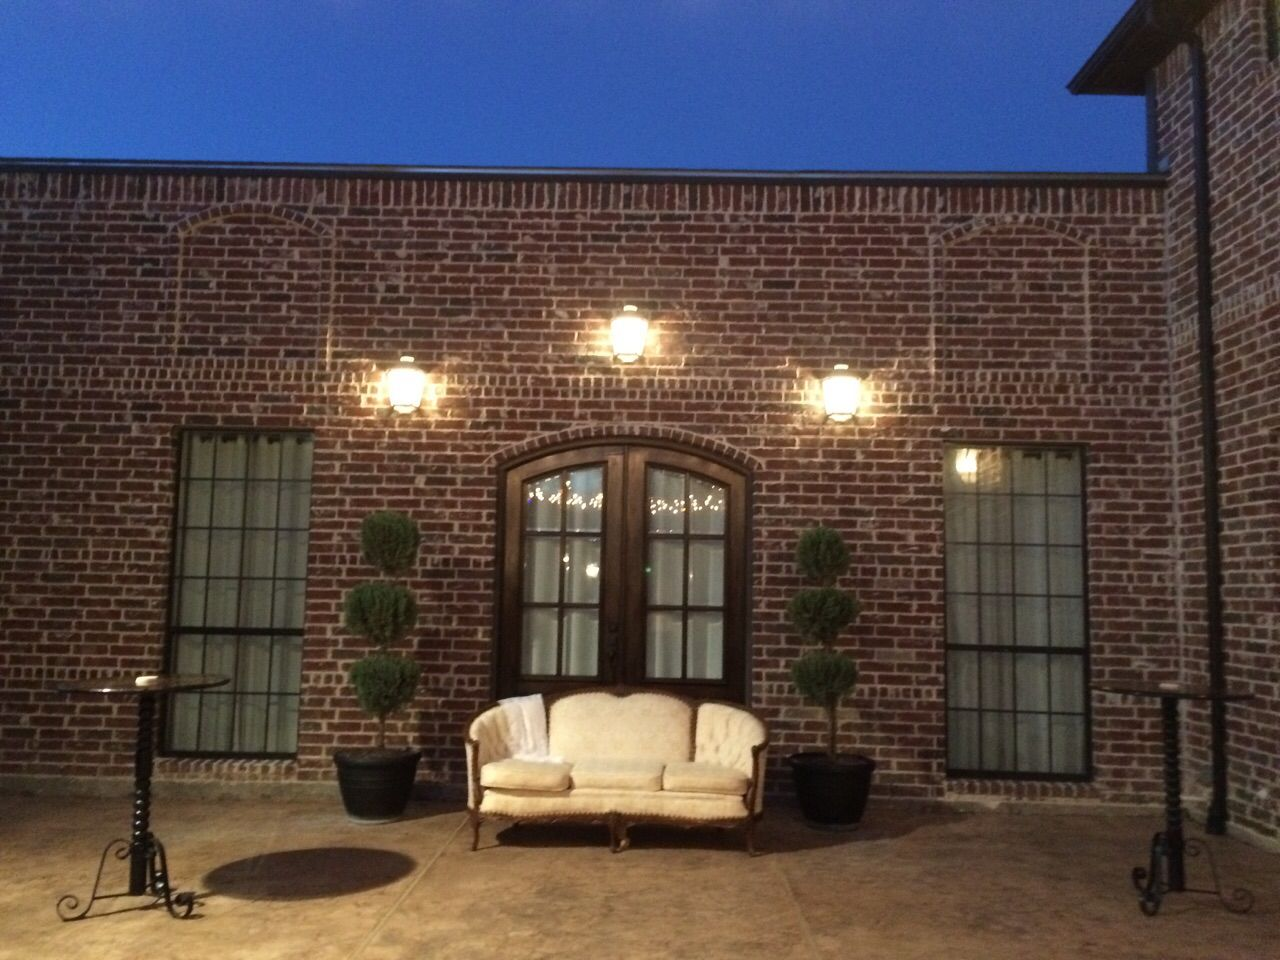 outdoor wedding venues dfw texas%0A Casual seating in The Courtyard of La Cour Venue  McKinney Event Venue  Outdoor  Wedding